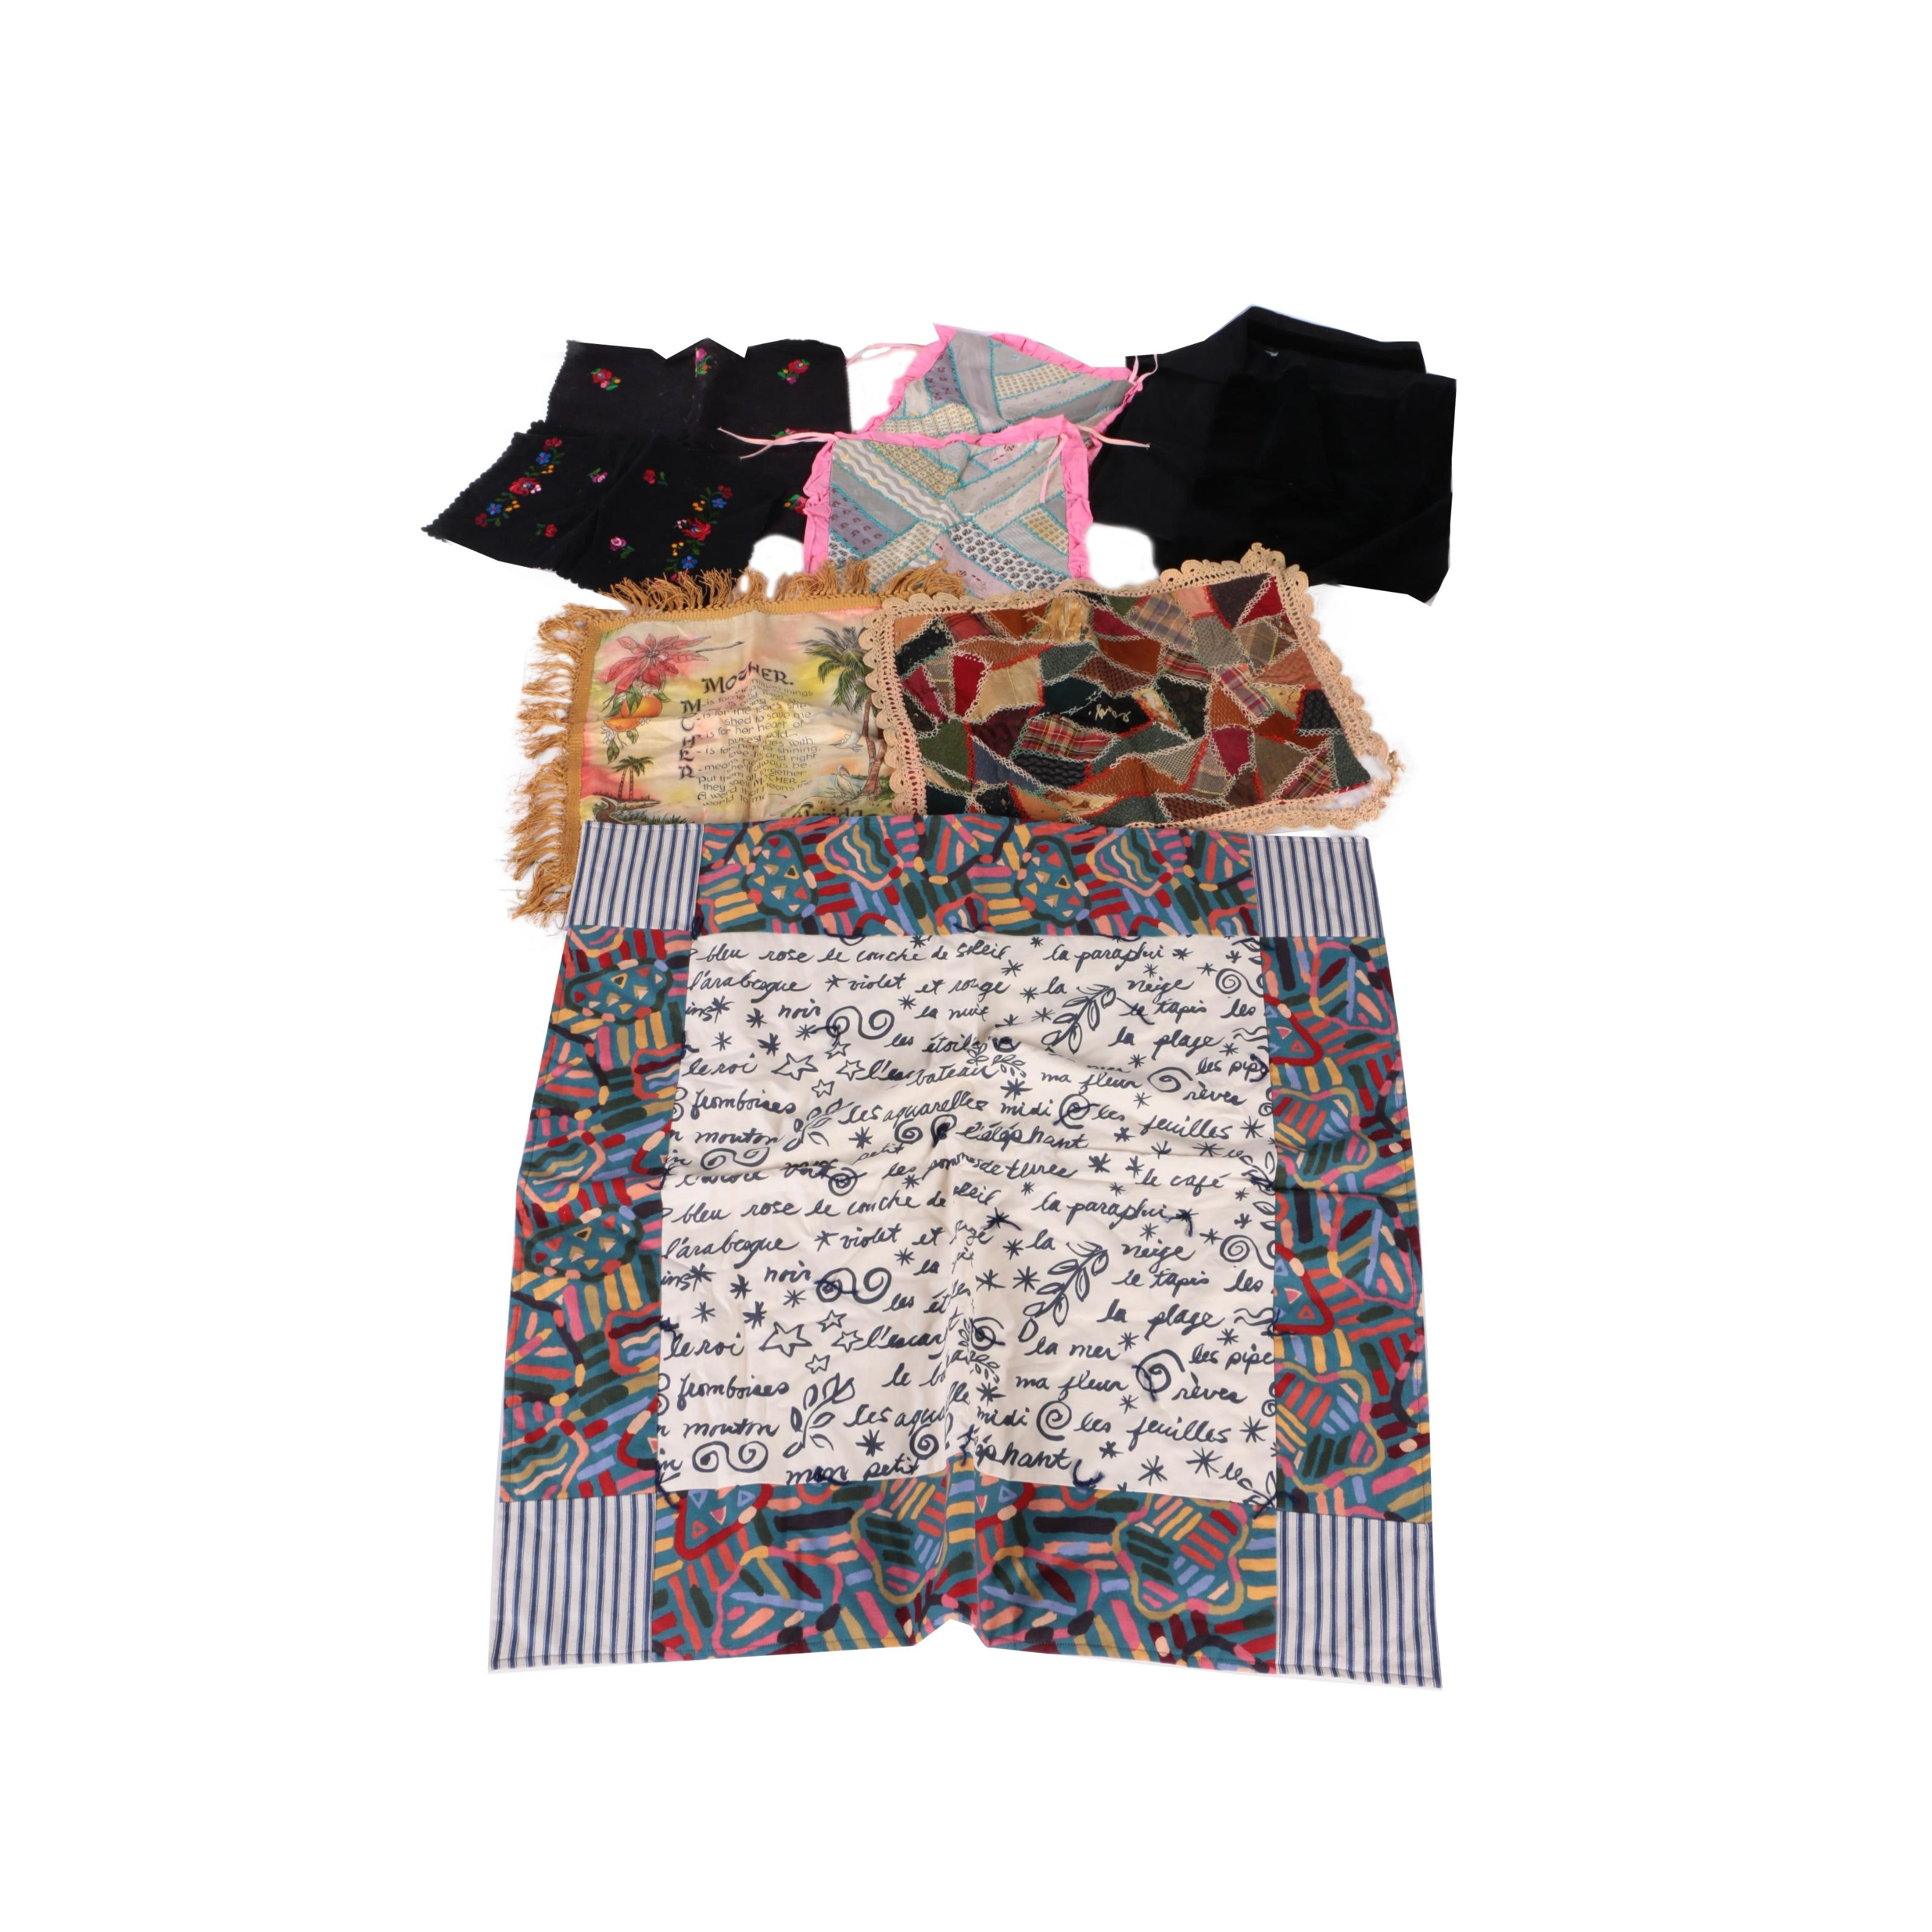 Collection of Patterned Textiles